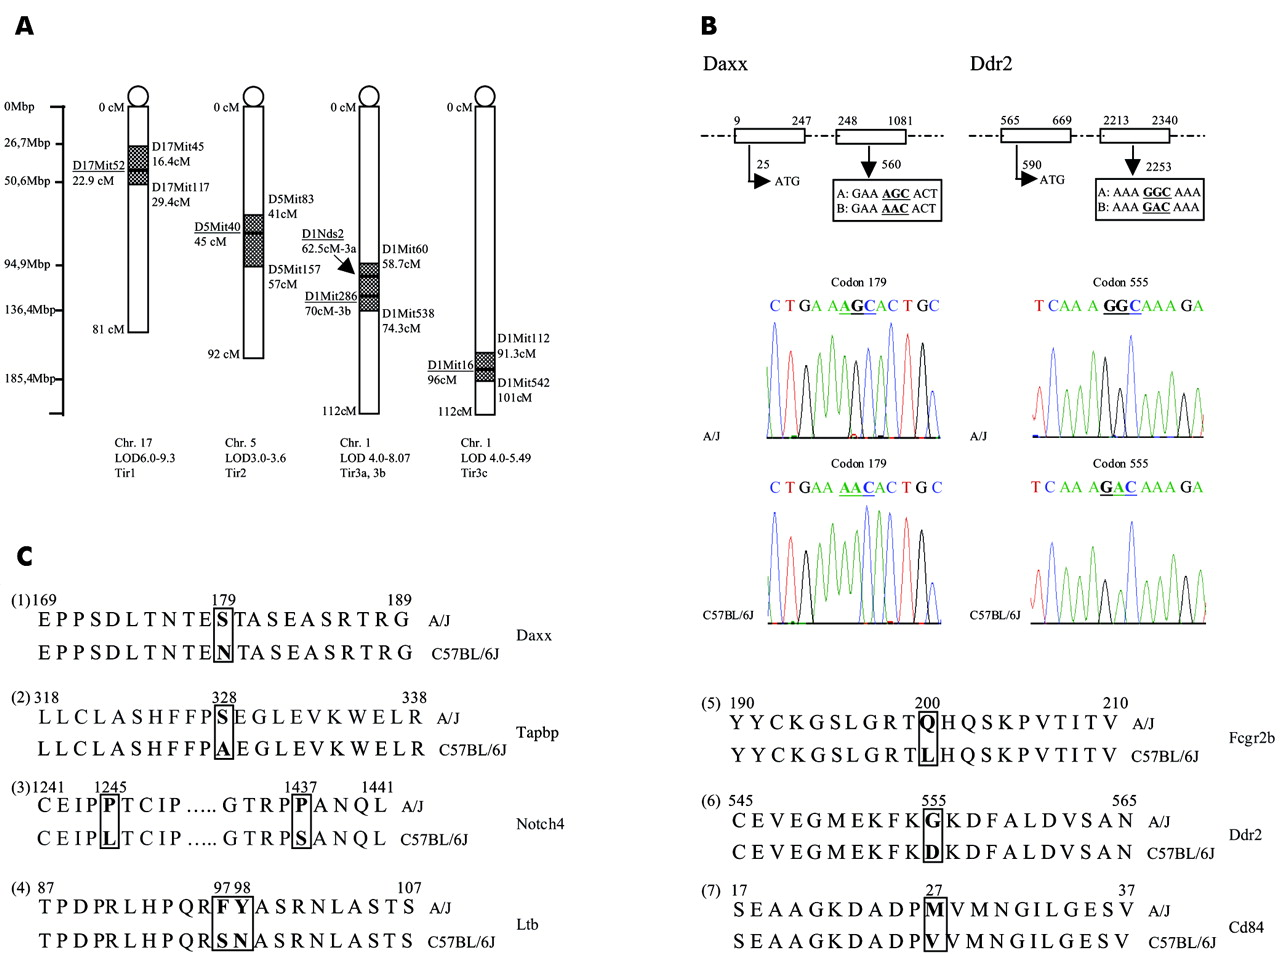 Snp single nucleotide polymorphism definition